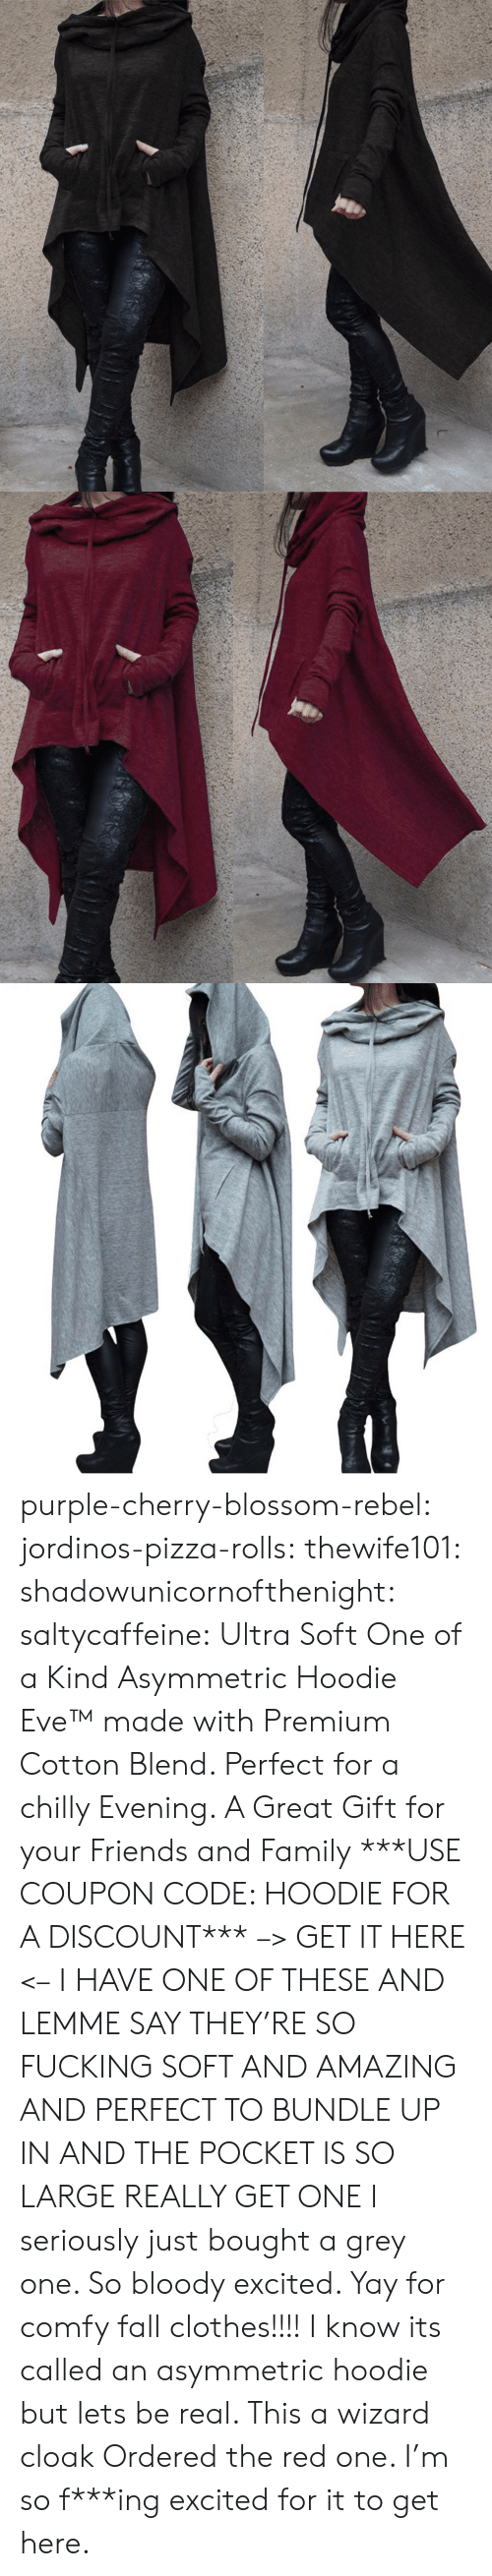 of a kind: purple-cherry-blossom-rebel:  jordinos-pizza-rolls:  thewife101:  shadowunicornofthenight:  saltycaffeine:  Ultra Soft One of a Kind Asymmetric Hoodie Eve™made with Premium Cotton Blend. Perfect for a chilly Evening. A Great Gift for your Friends and Family ***USE COUPON CODE: HOODIE FOR A DISCOUNT*** –> GET IT HERE <–   I HAVE ONE OF THESE AND LEMME SAY THEY'RE SO FUCKING SOFT AND AMAZING AND PERFECT TO BUNDLE UP IN AND THE POCKET IS SO LARGE REALLY GET ONE   I seriously just bought a grey one. So bloody excited. Yay for comfy fall clothes!!!!    I know its called an asymmetric hoodie but lets be real. This a wizard cloak   Ordered the red one. I'm so f***ing excited for it to get here.